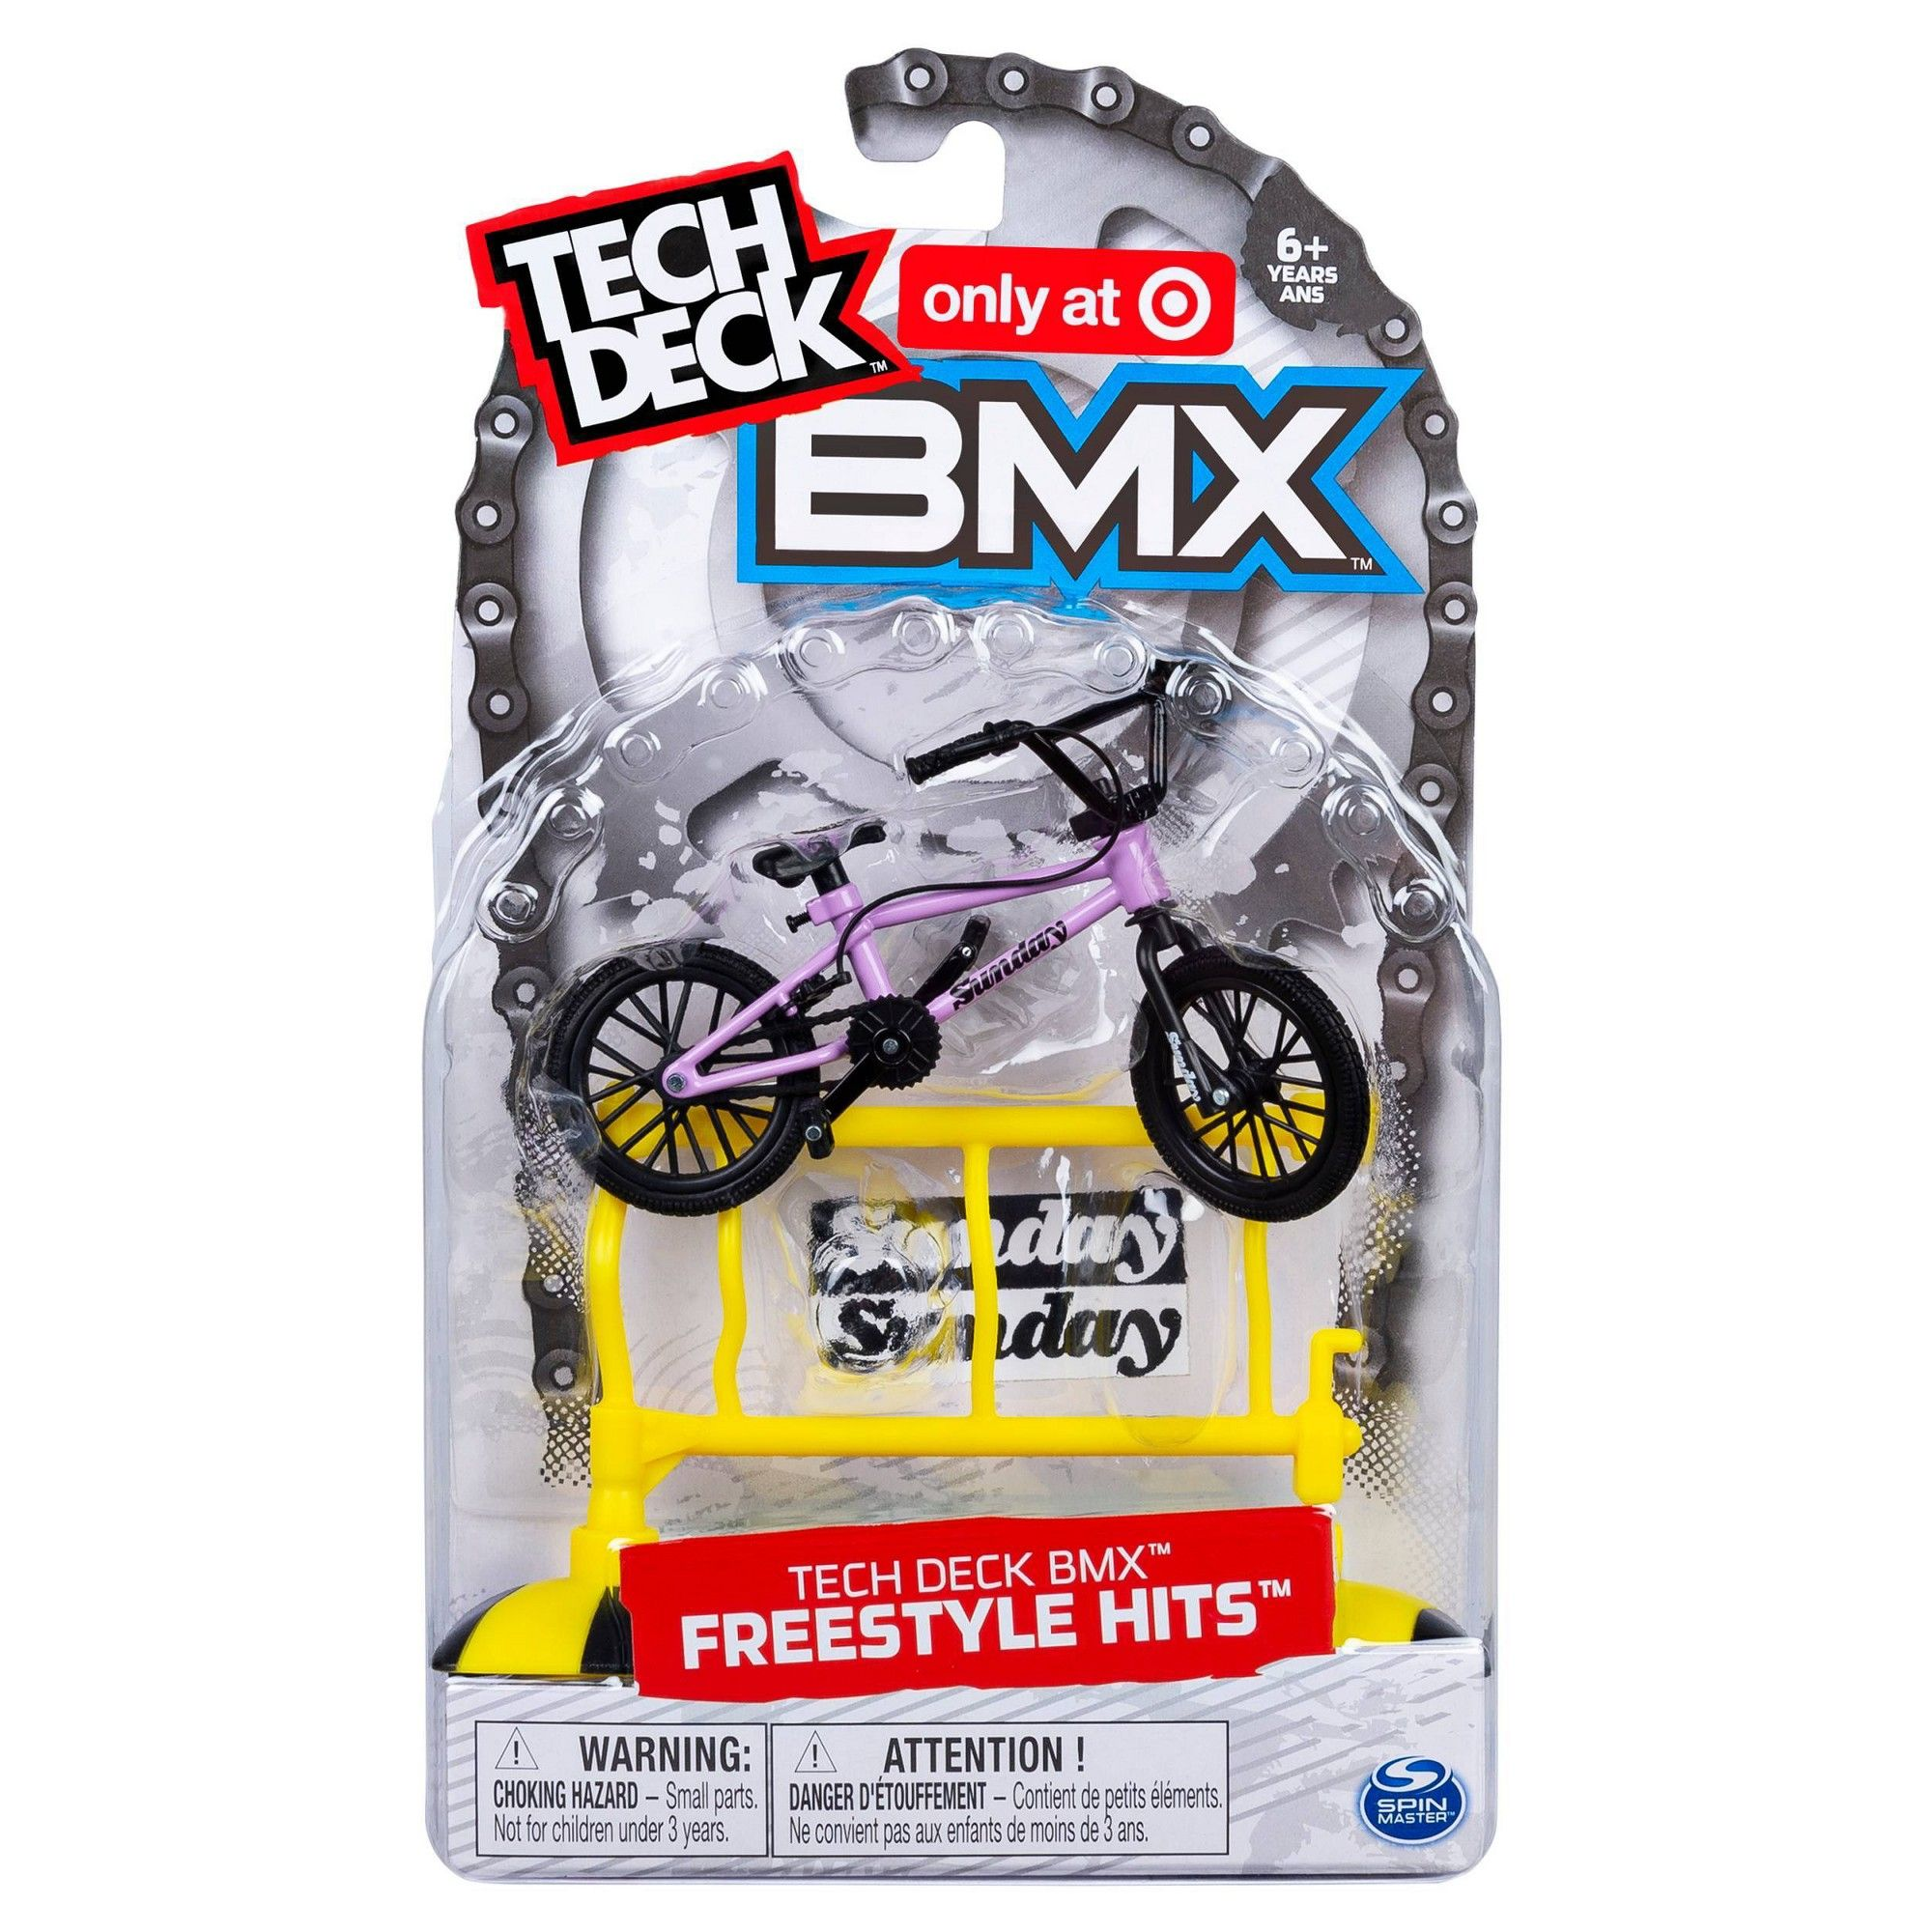 Tech Deck BMX Freestyle Hits Finger Bike with Freestyle